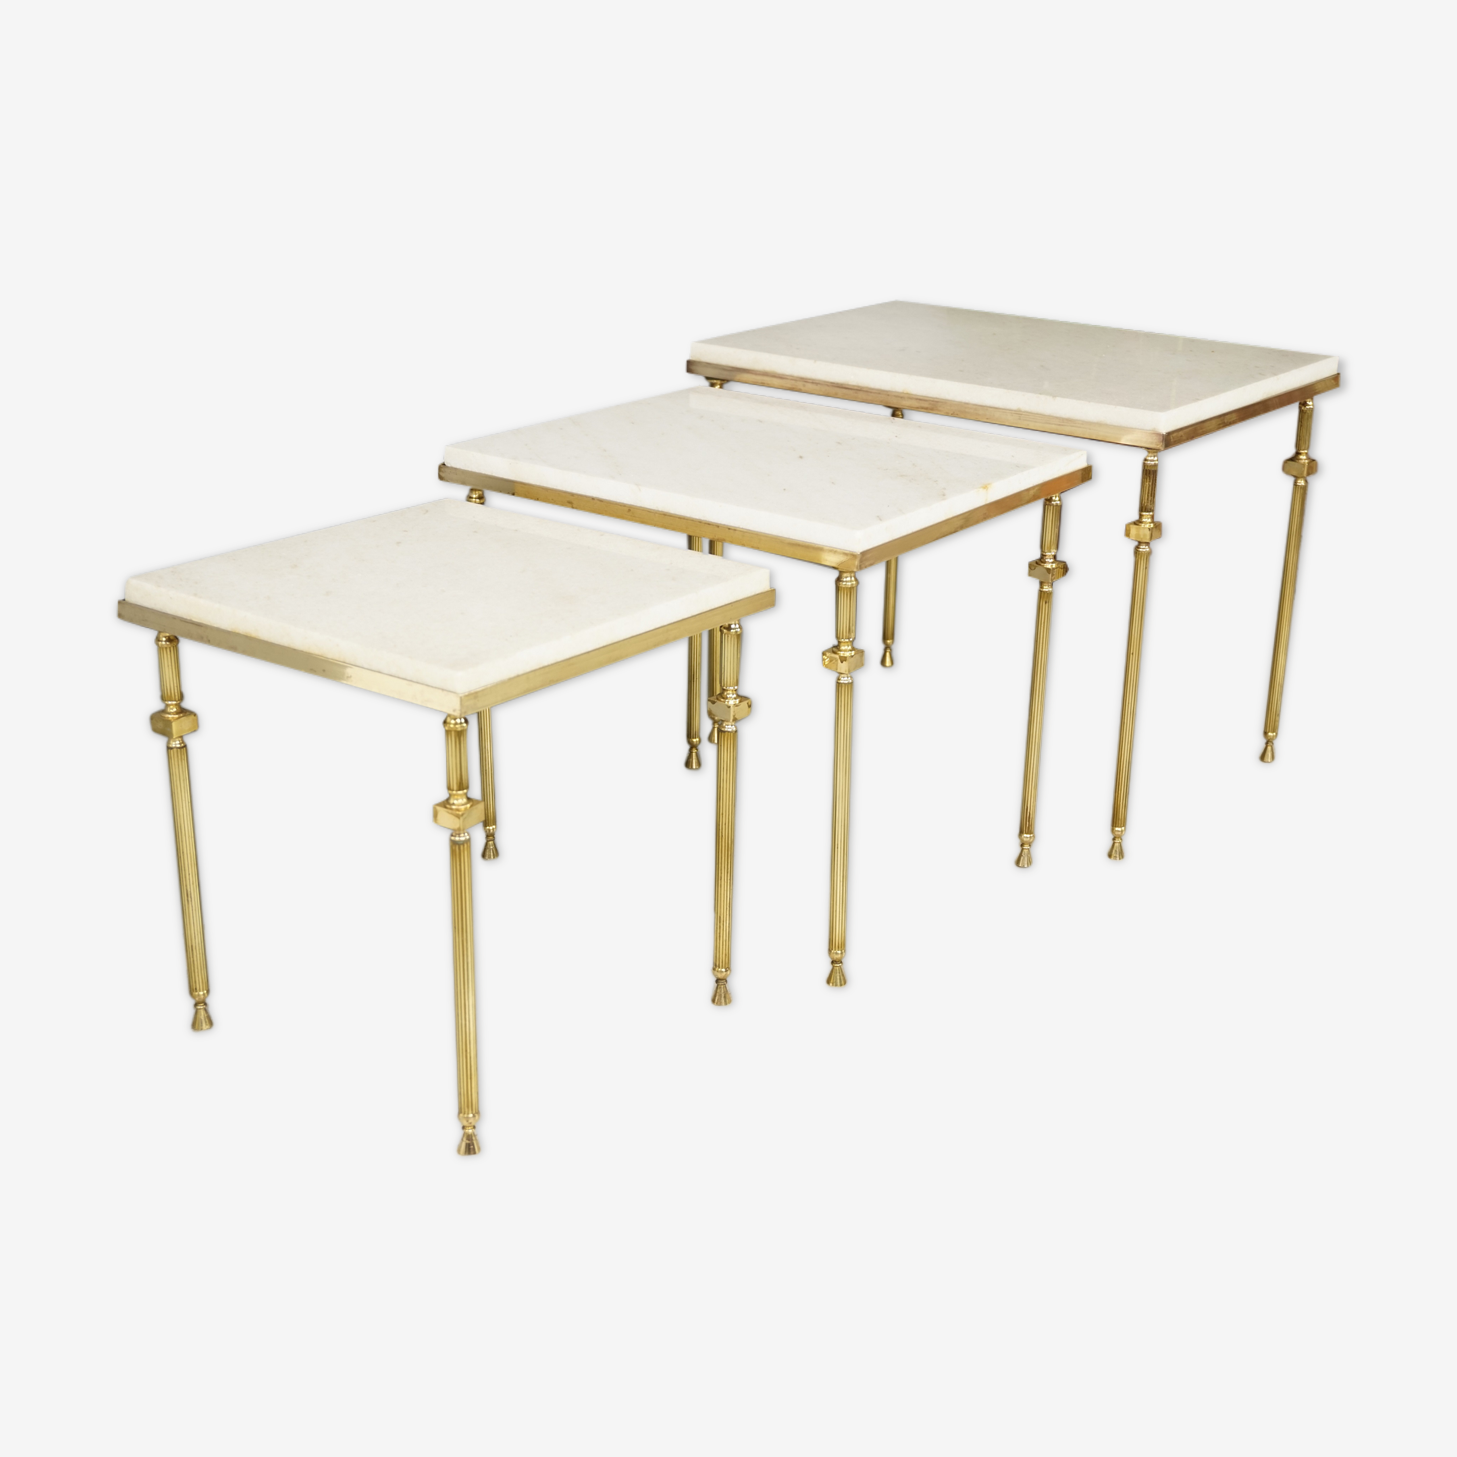 Neo-classical style 70's nesting tables